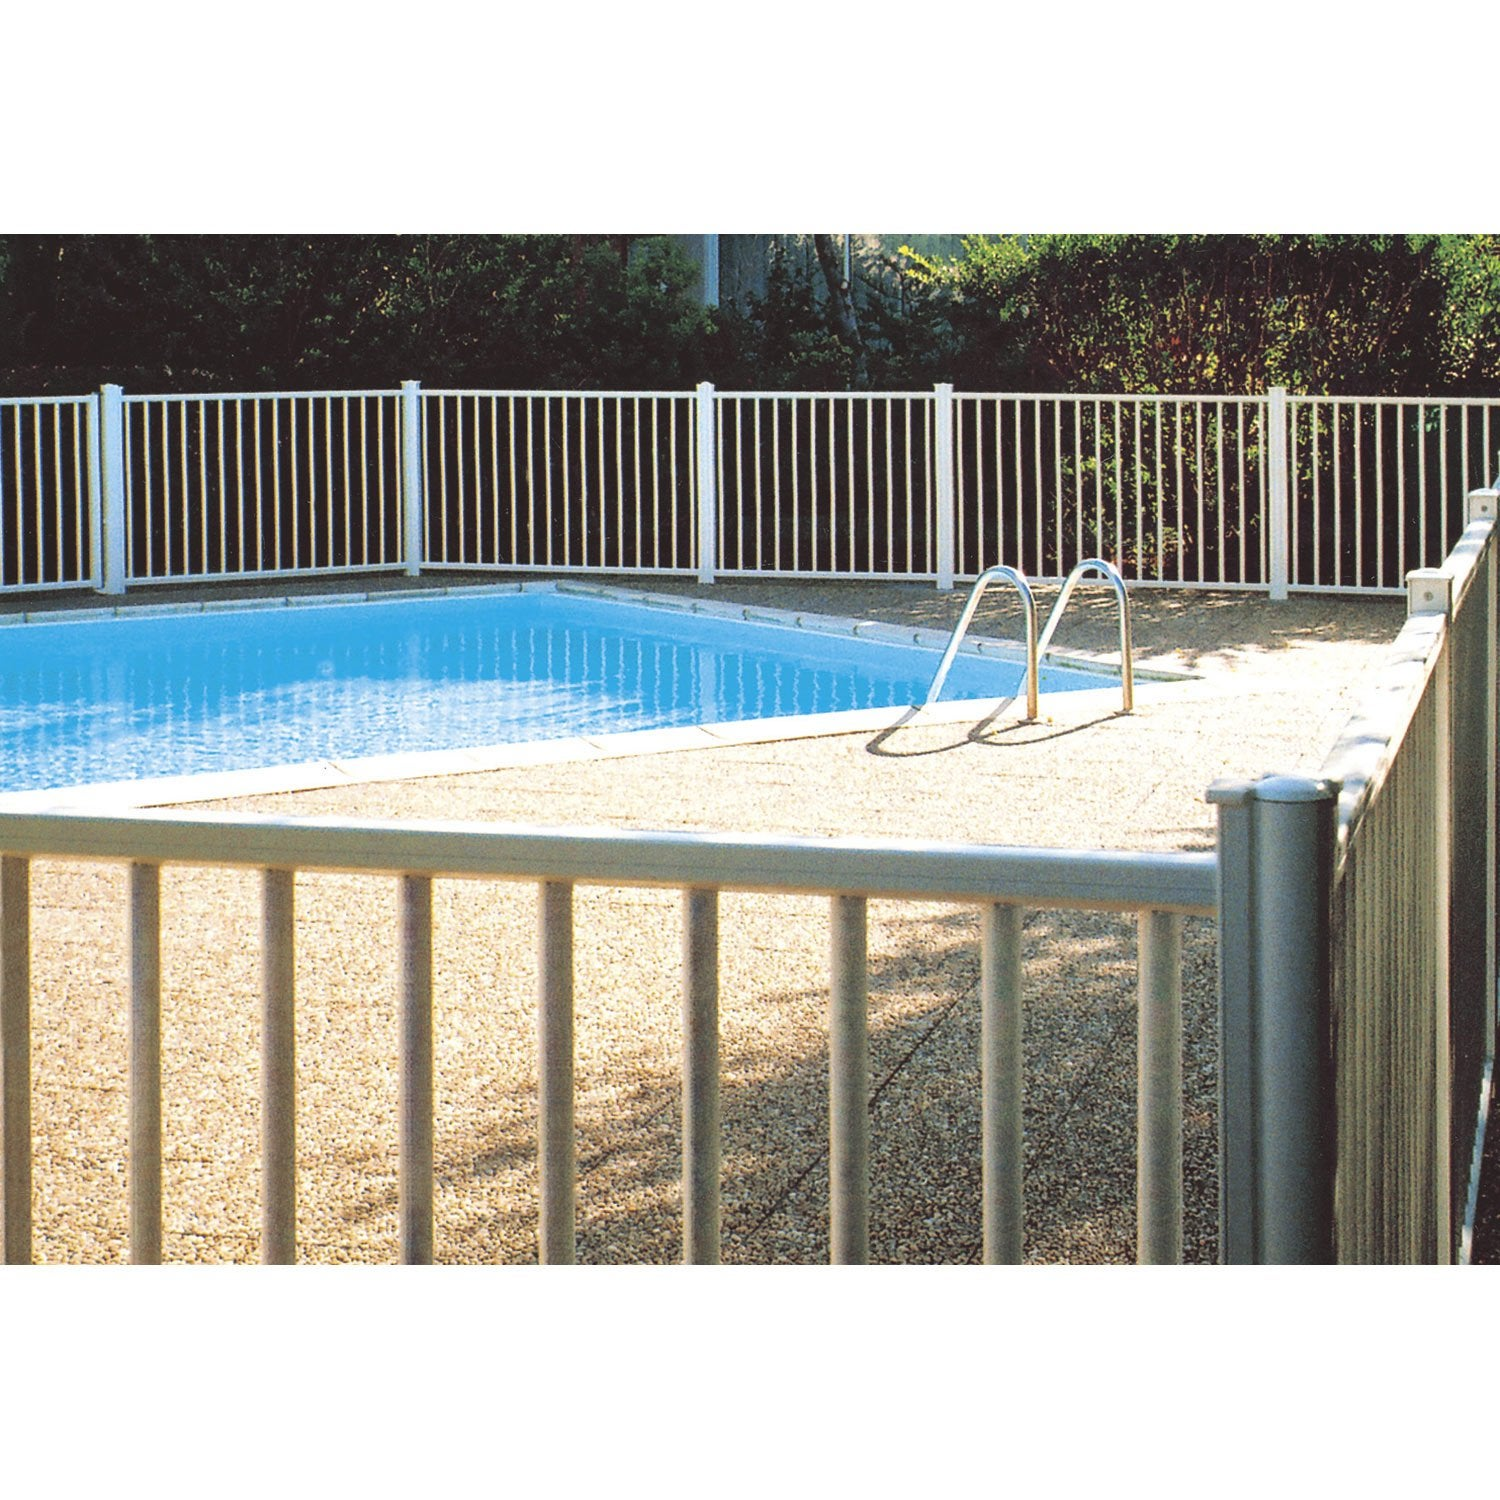 Barri re pour piscine aluminium issambres blanc 9010 h for Portillon jardin pas cher